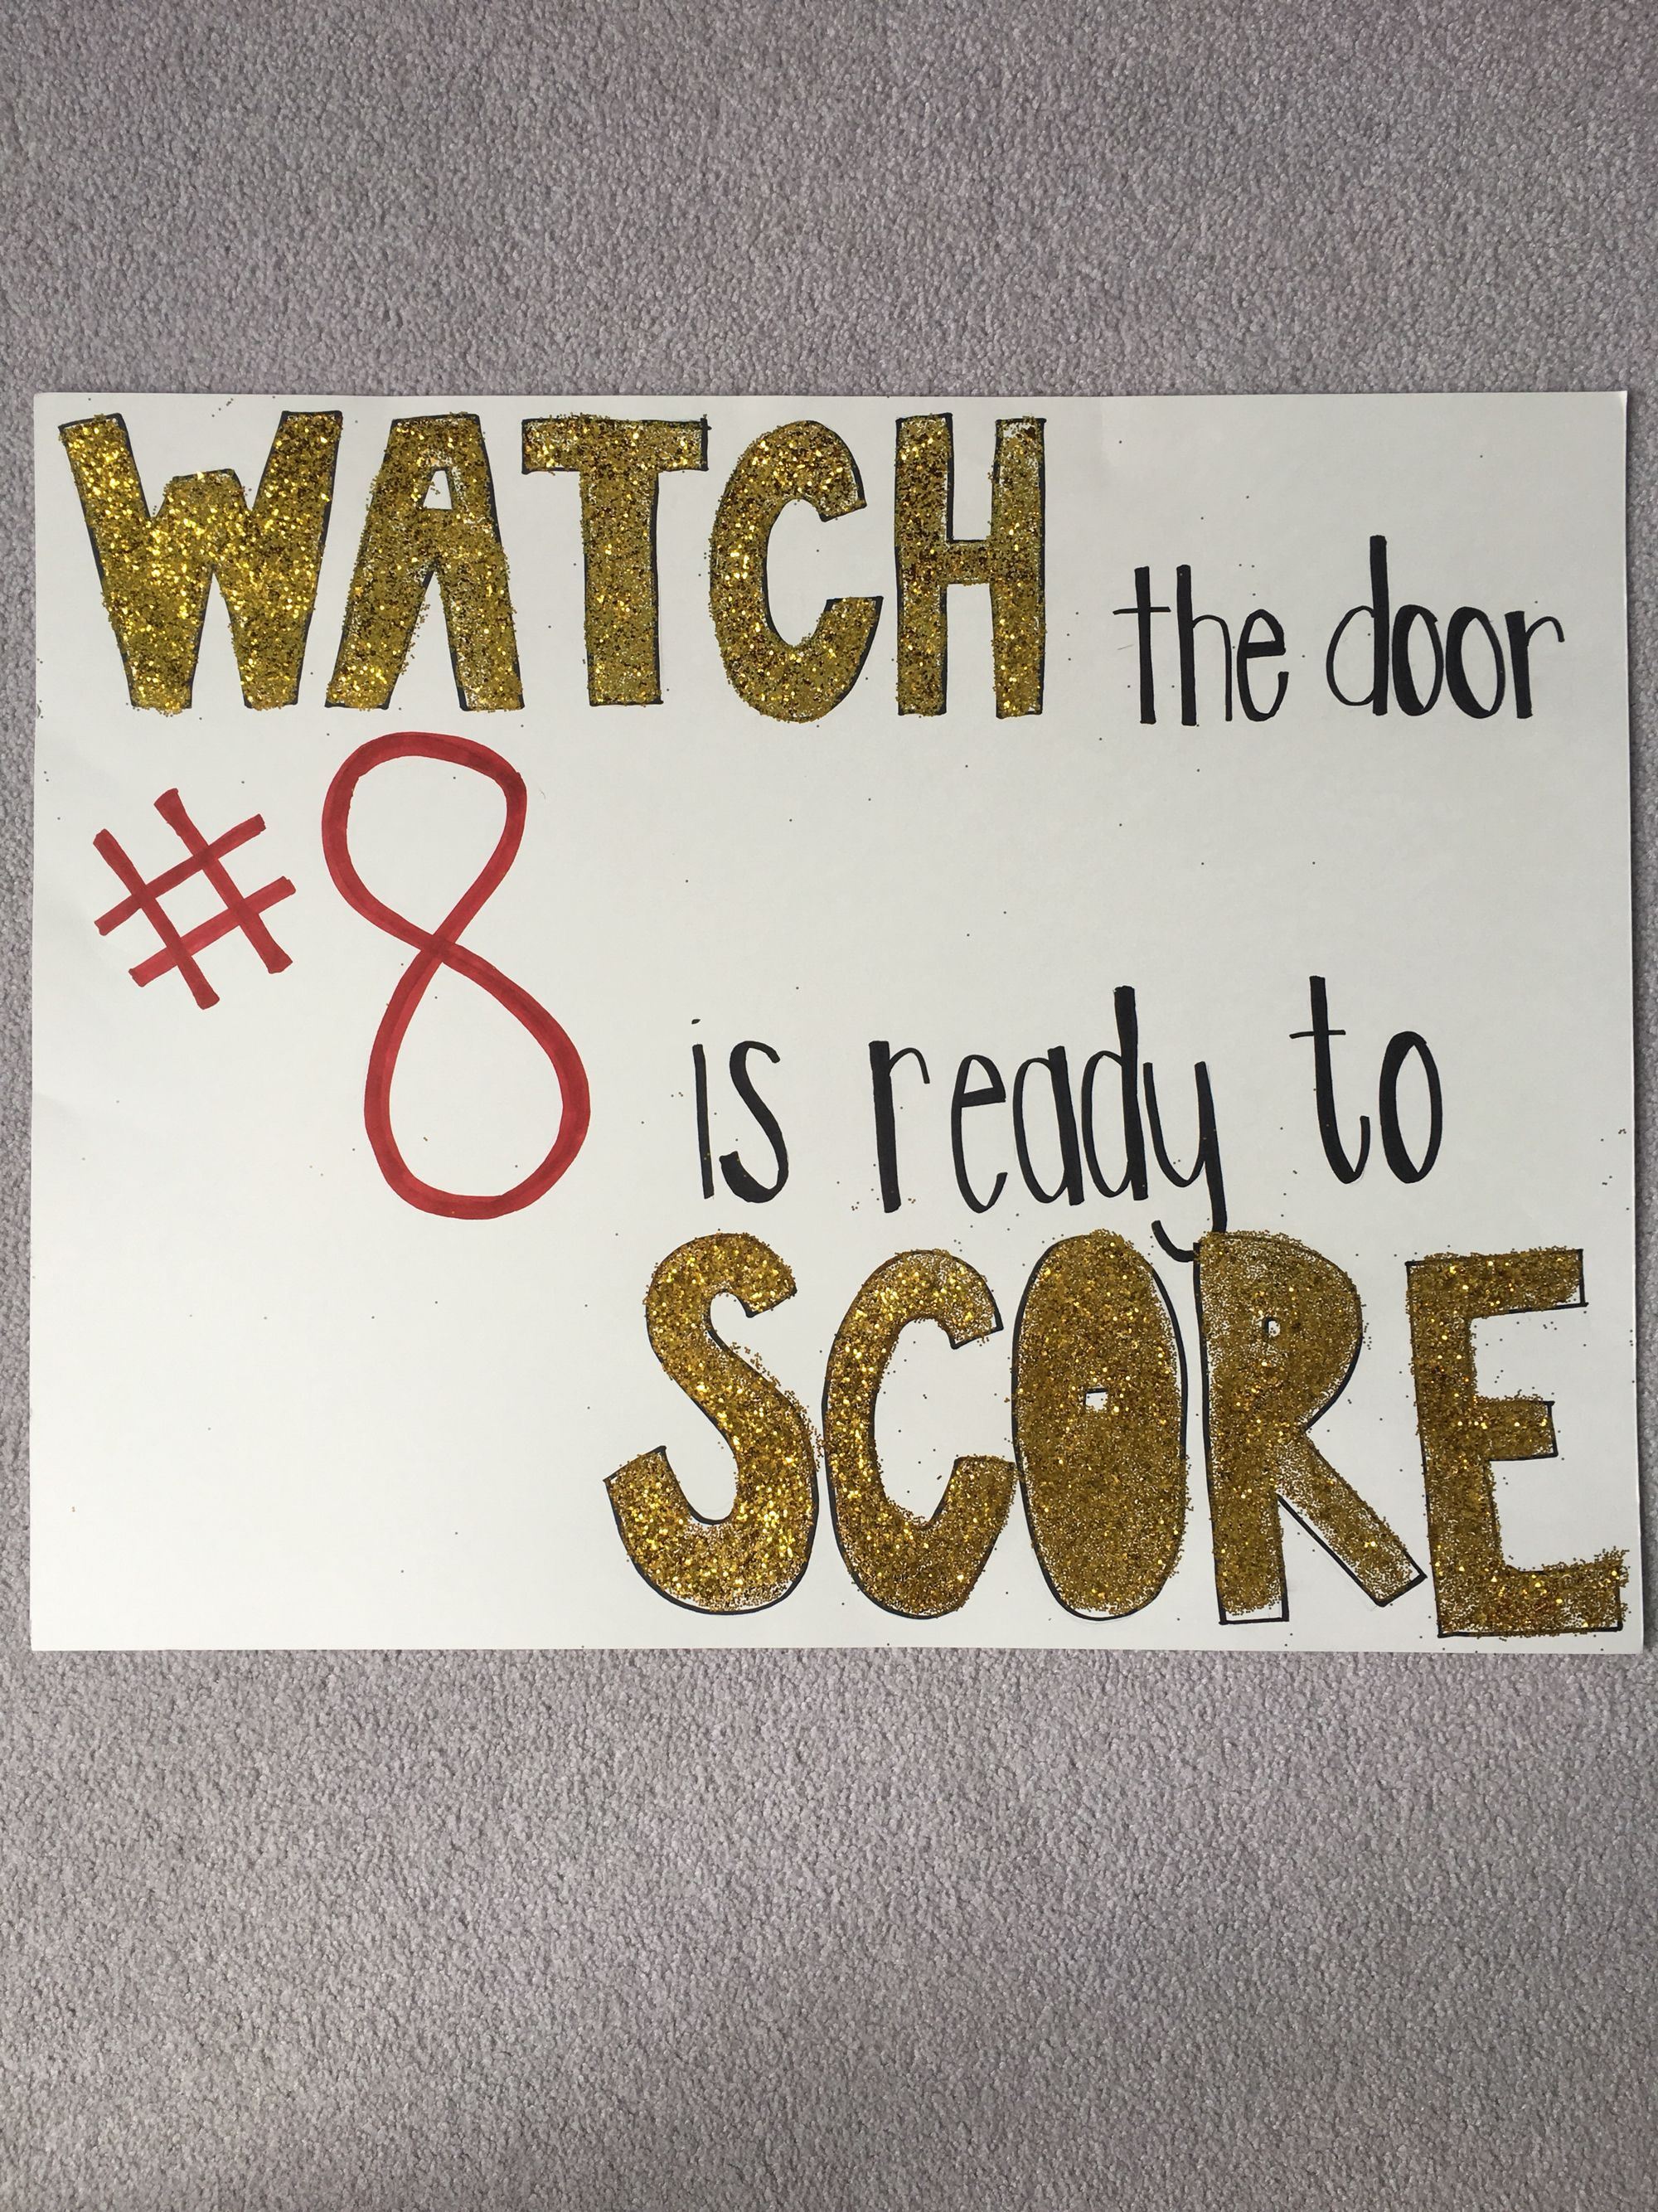 Super Fan Posters What Is The Best Season For Doing Sports Calling Summer Is True And Winter Is In Fact It Is N In 2020 Soccer Poster Posters Diy Football Poster